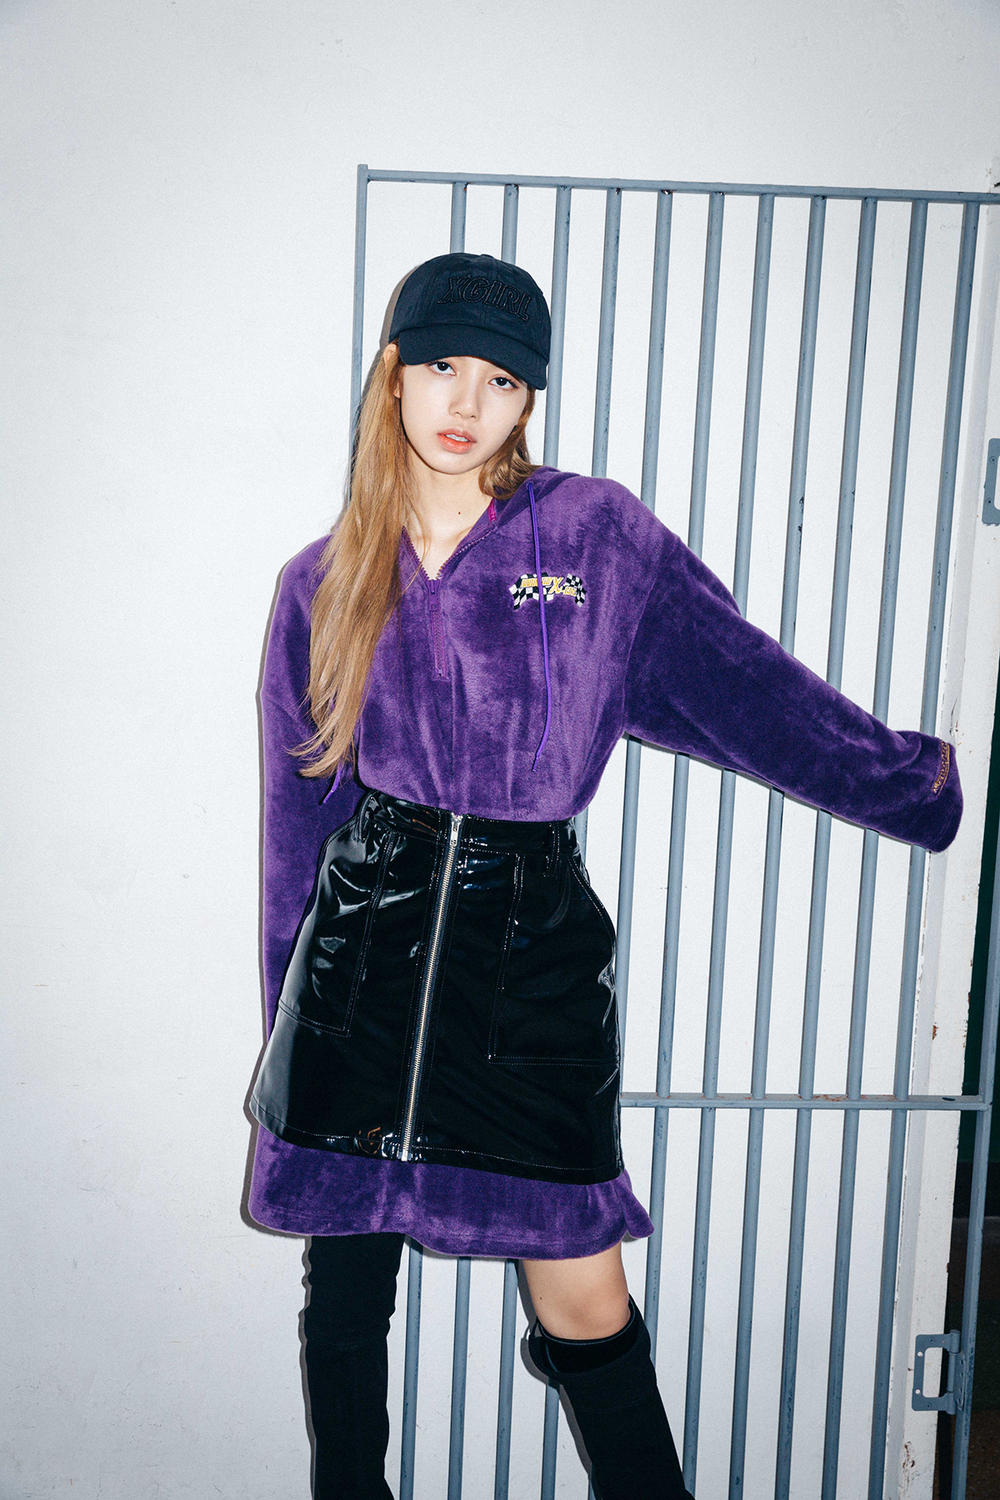 X-Girl Nonagon Blackpink Lisa Campaign Collaboration K-Pop Purple Black Hat Skirt